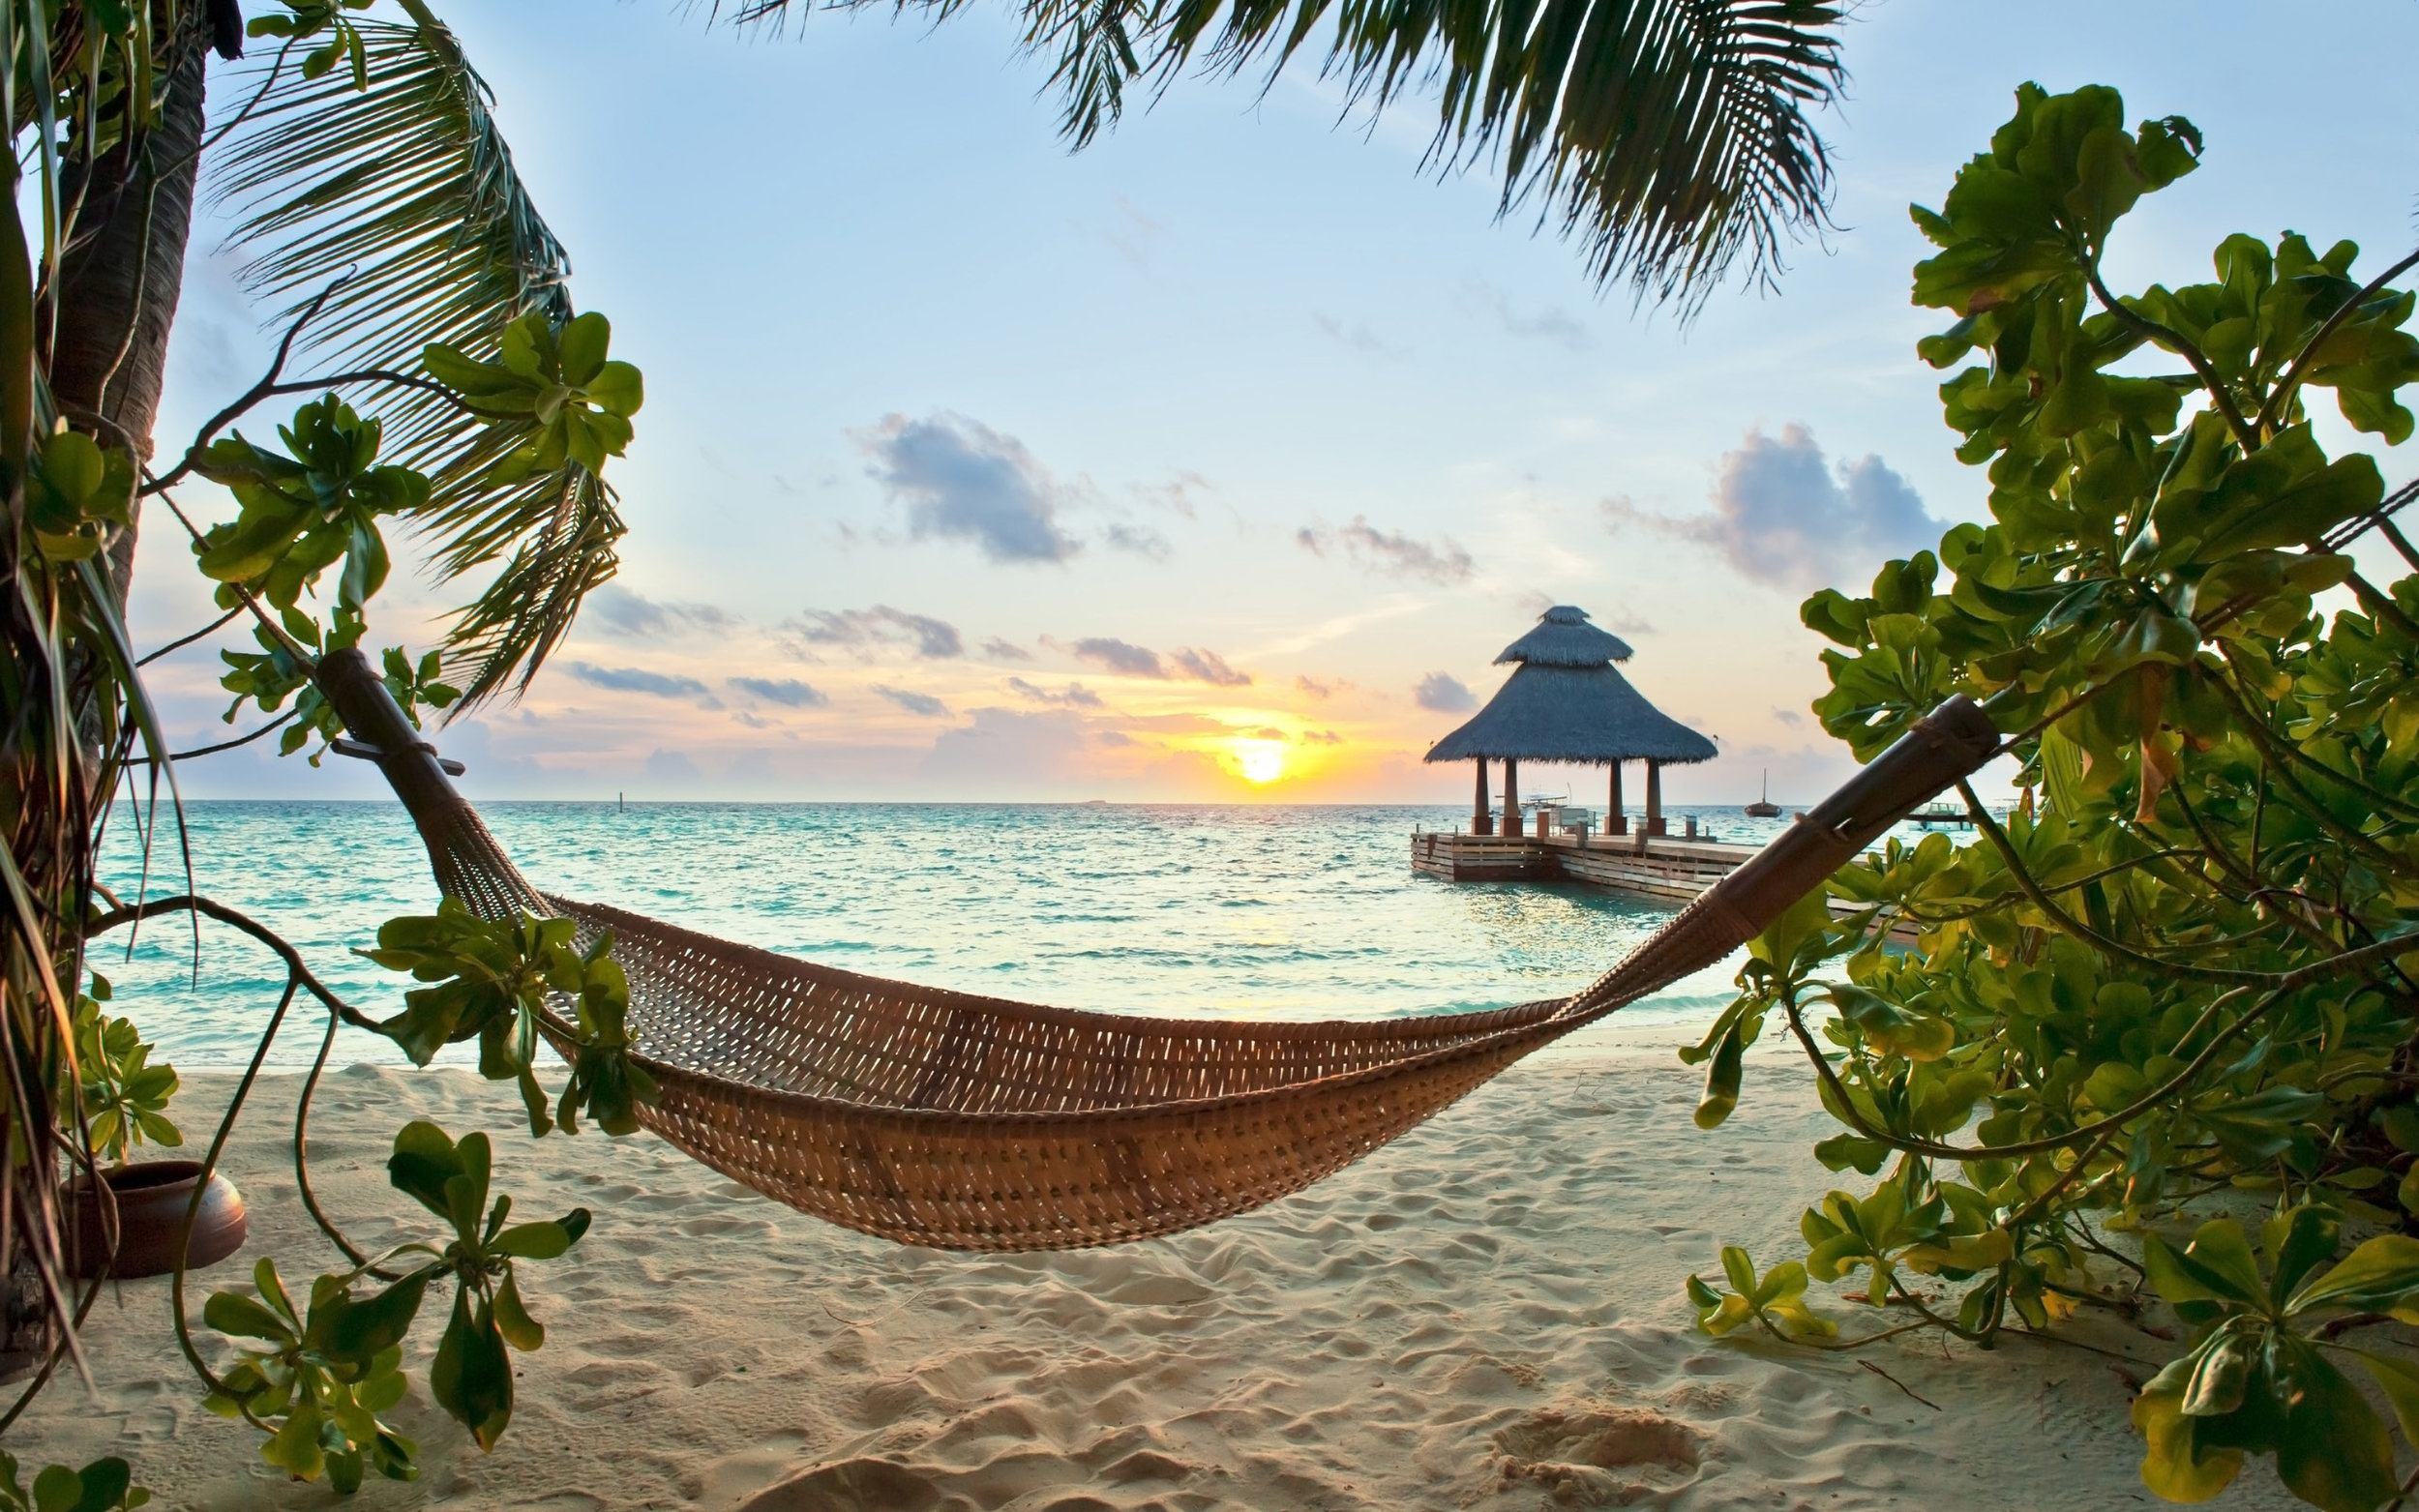 tropical-beach-pictures-hammock-wallpapers-widescreen-70702280.jpg